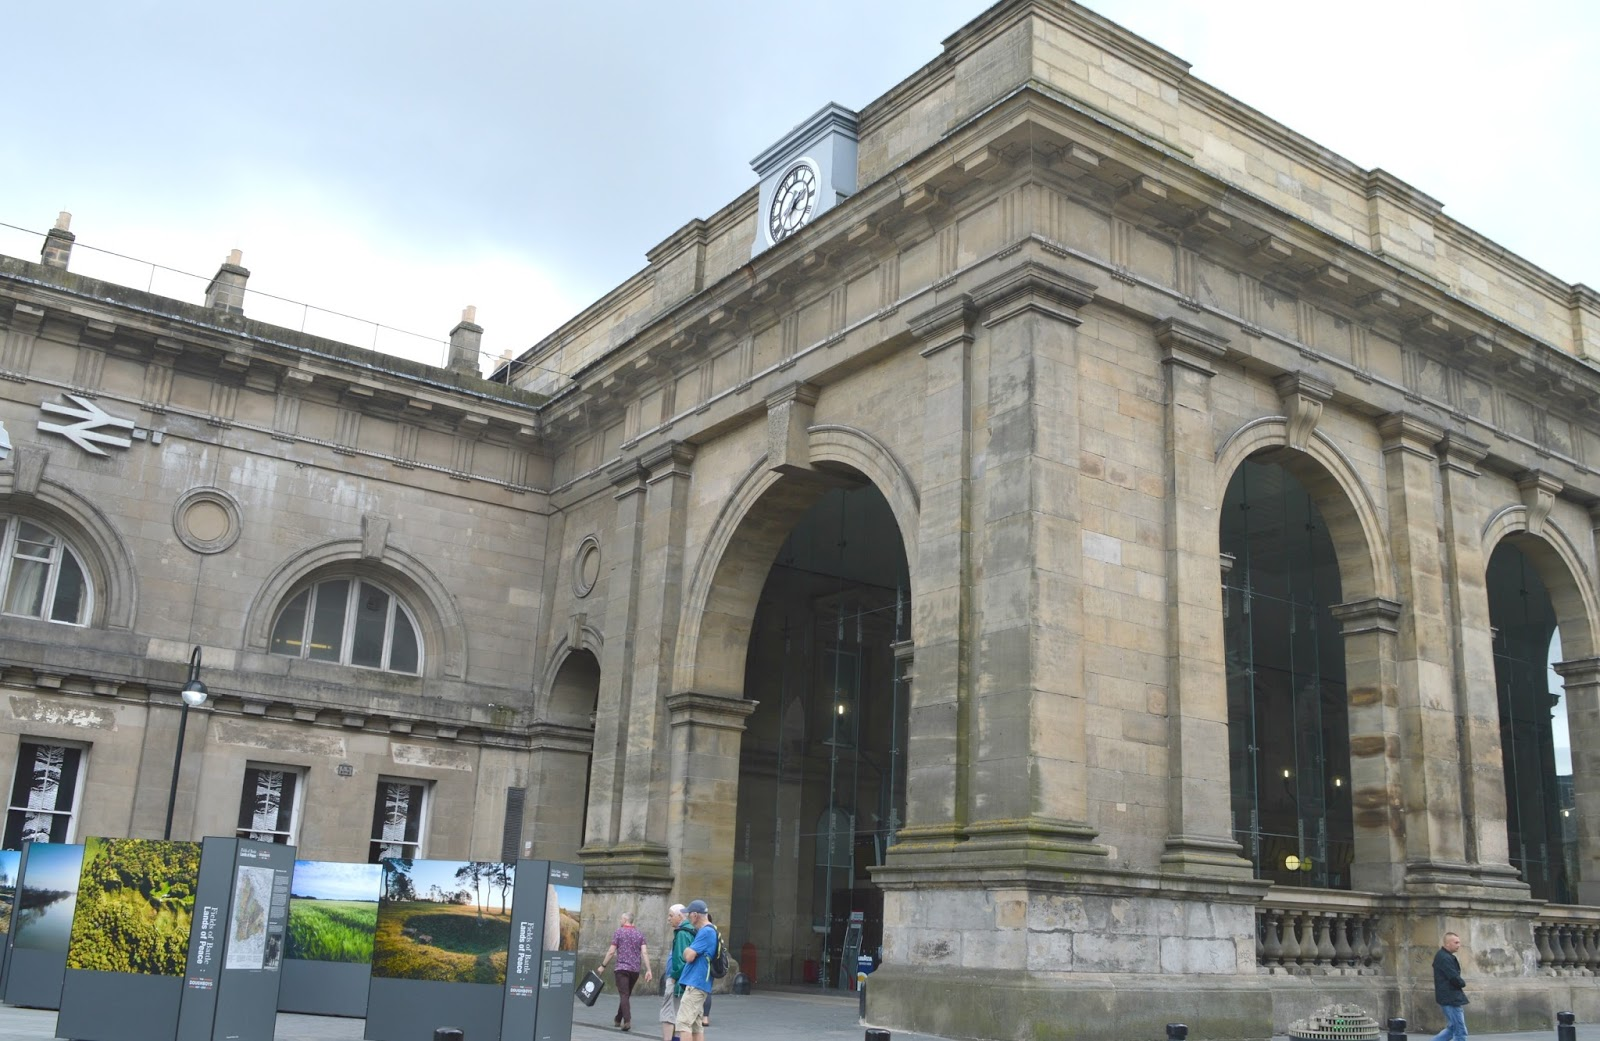 The Best Restaurants, Bars and Coffee Shops near Central Train Station, Newcastle